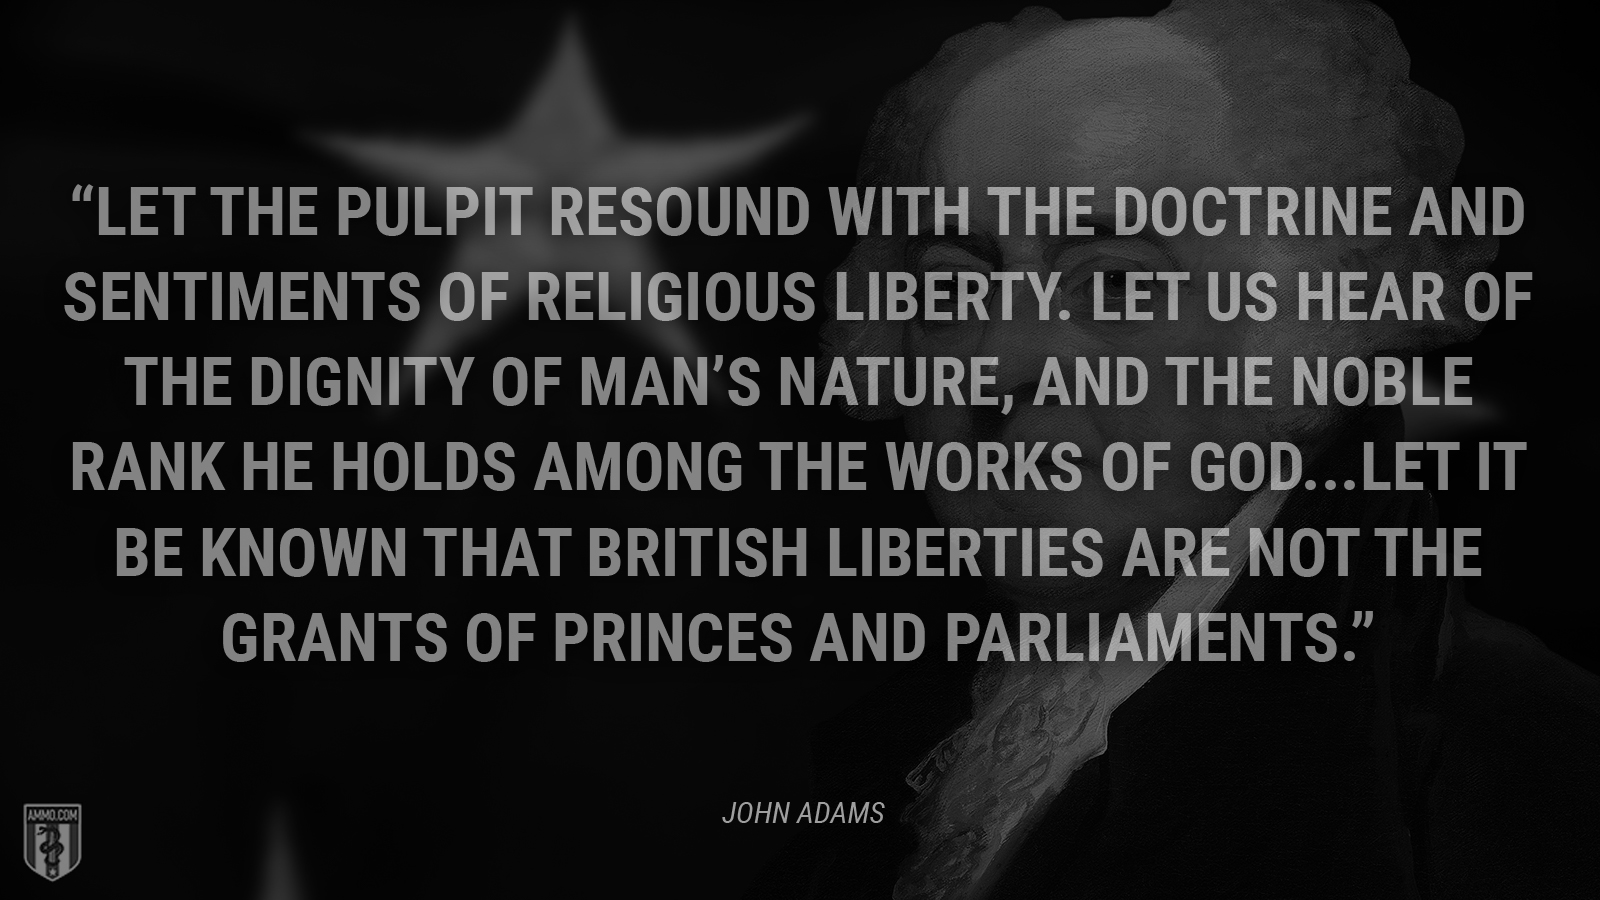 """Let the pulpit resound with the doctrine and sentiments of religious liberty. Let us hear of the dignity of man's nature, and the noble rank he holds among the works of God. … Let it be known that British liberties are not the grants of princes and parliaments."" - John Adams"